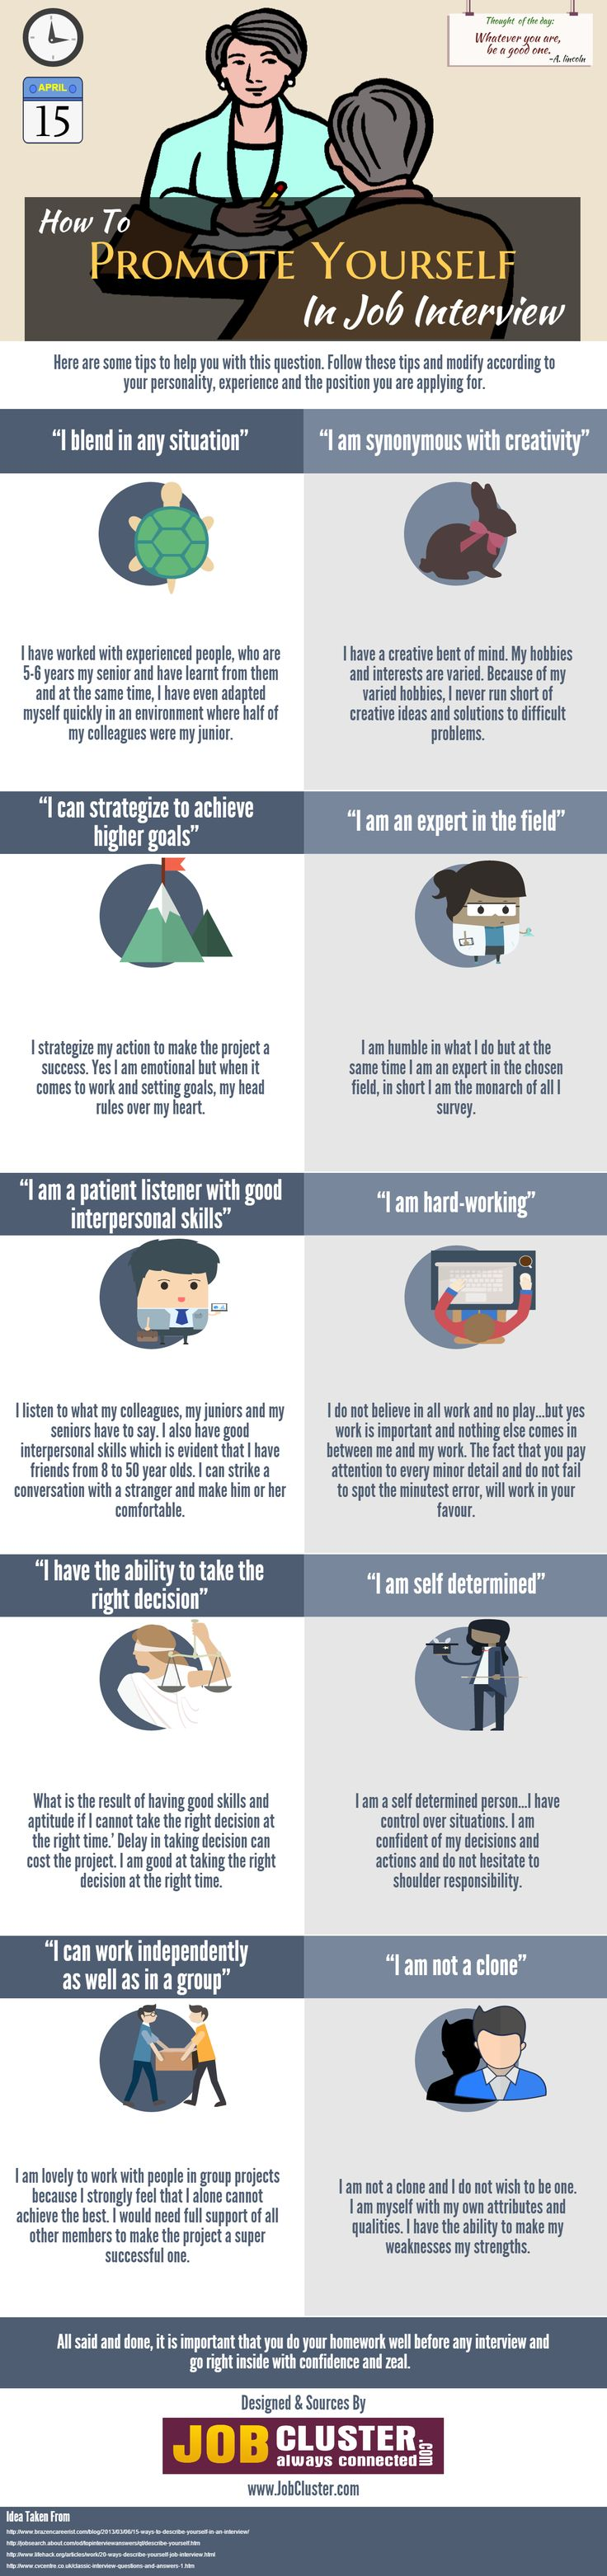 How to Promote Yourself in Job Interview